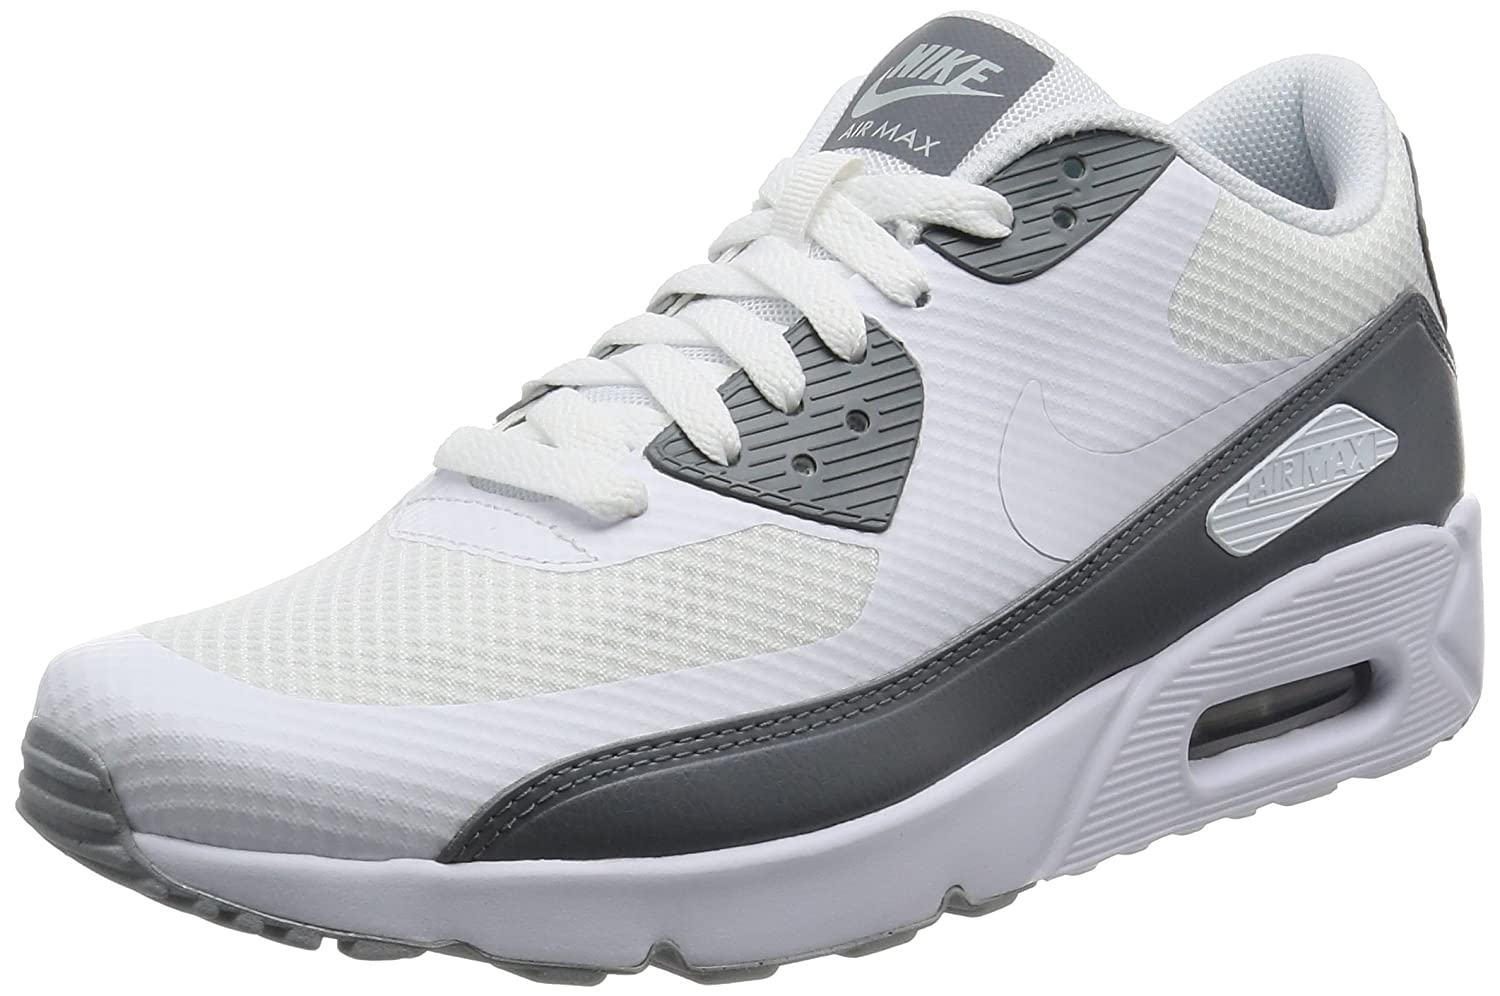 the best attitude 0606b a6375 NIKE Men's Air Max 90 Ultra 2.0 Essential White/White Cool Grey Running  Shoe 10 Men US